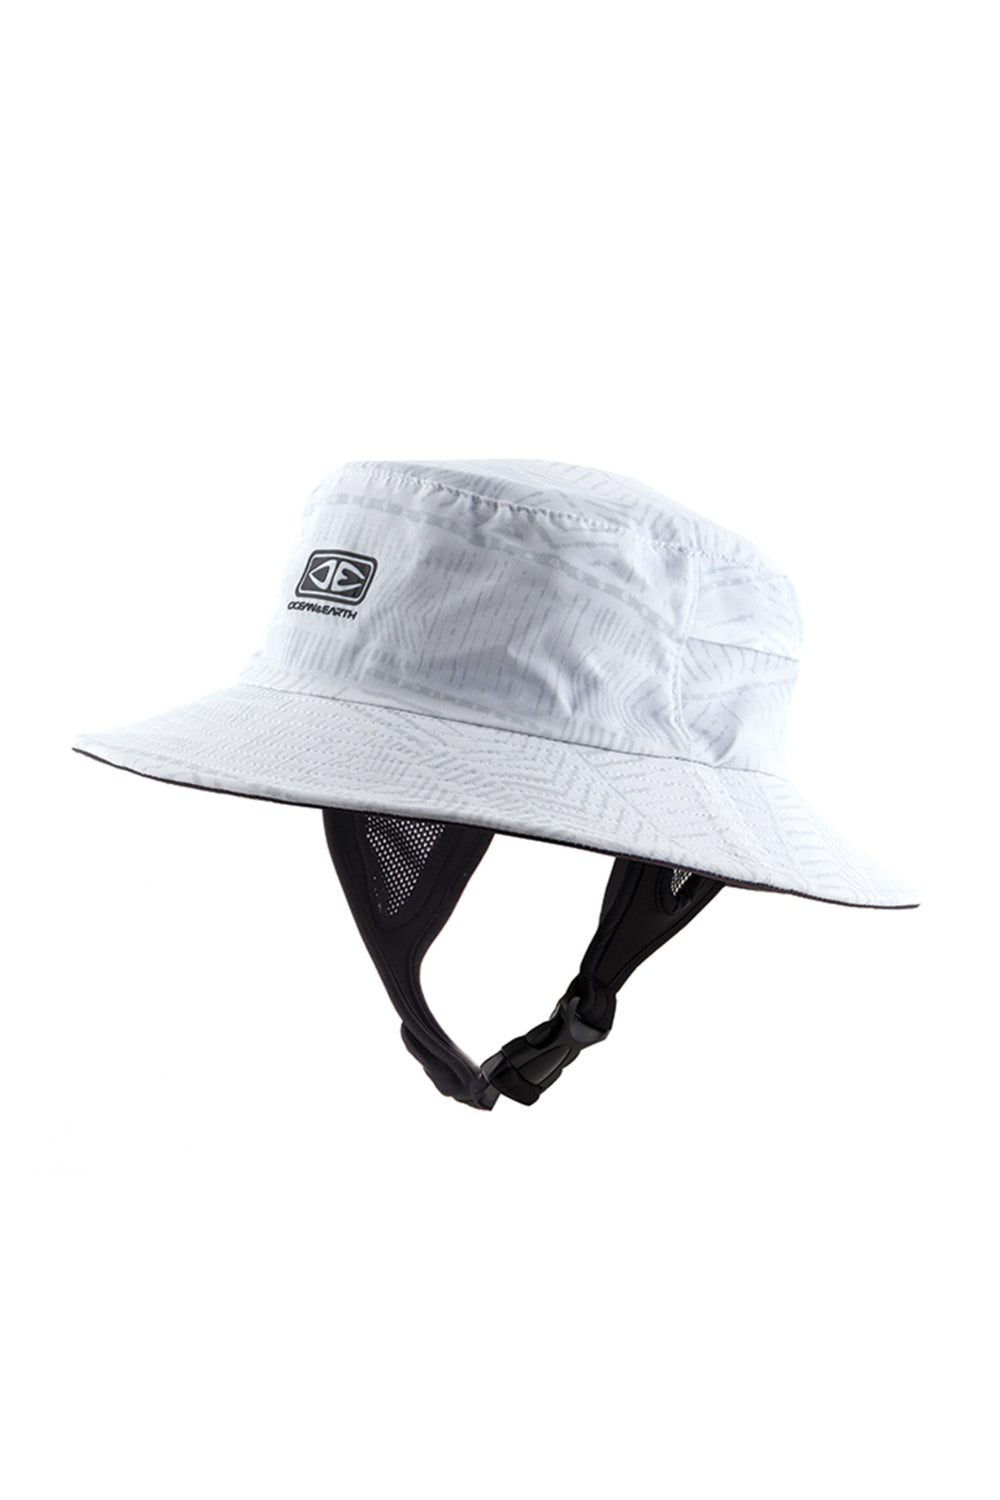 Ocean & Earth Youth Bingin Soft Peak Surf Hat